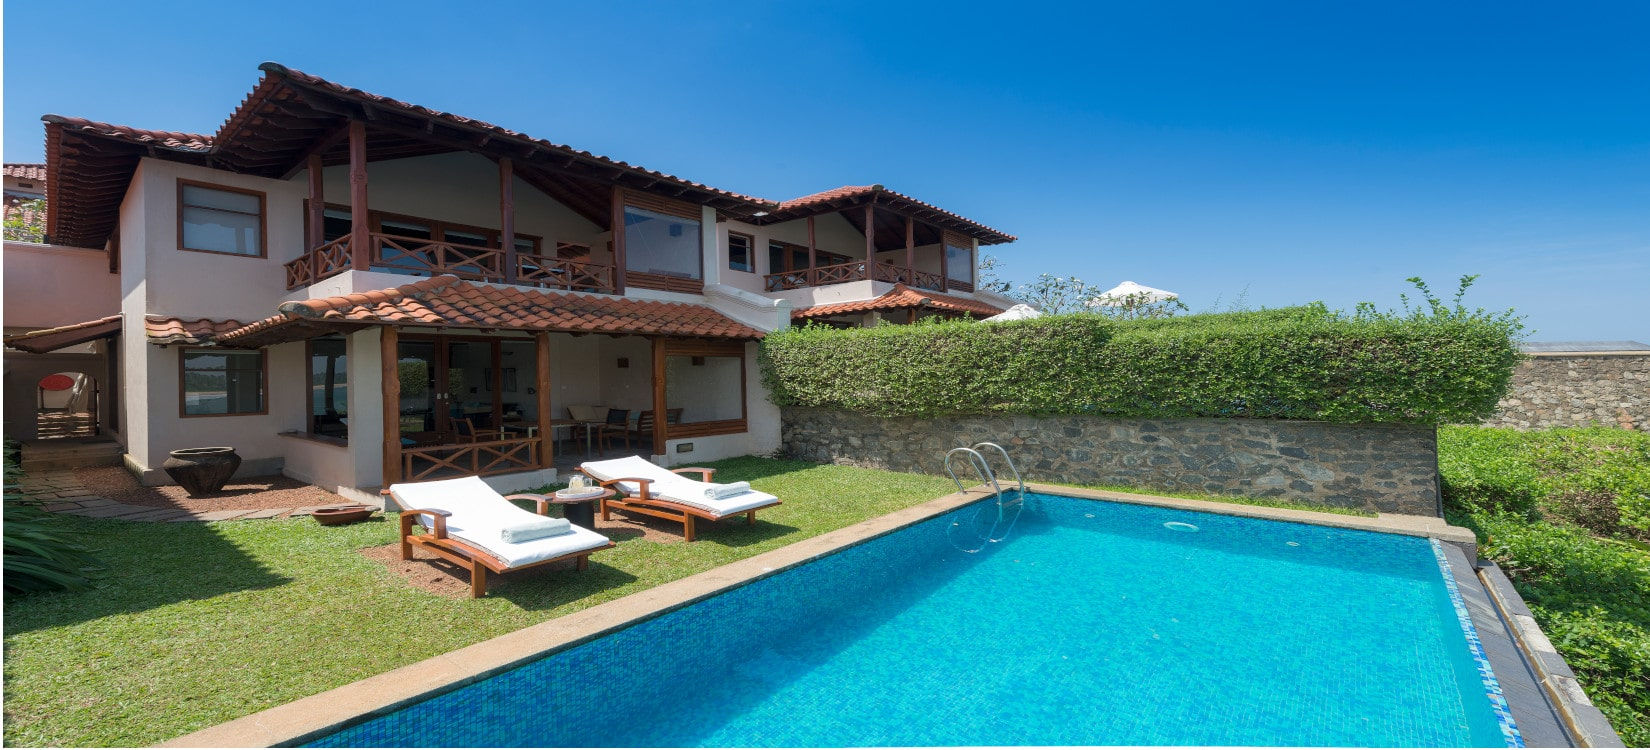 villa with pool srilanka-min